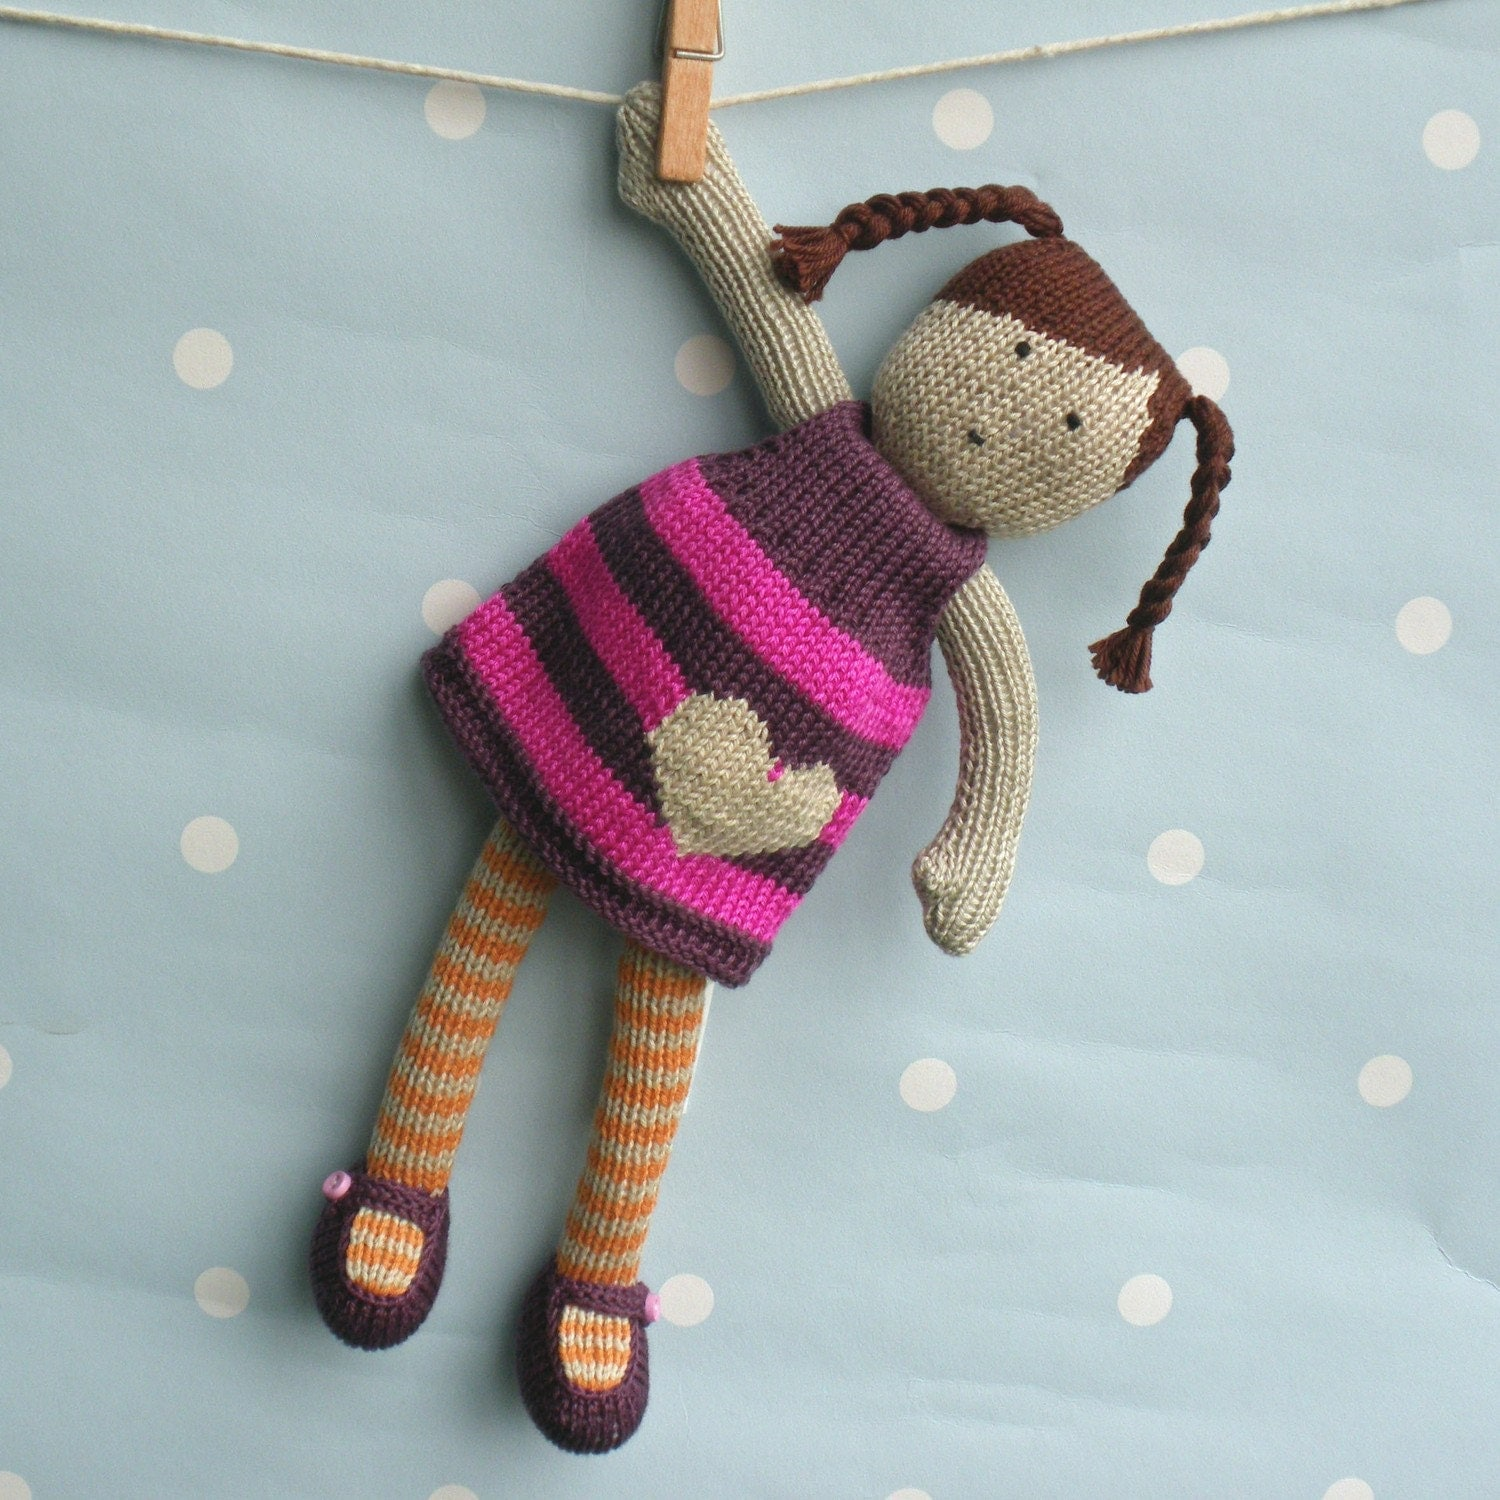 Knitting Patterns For Toy Dolls : Issy Hand Knitted Doll by BooBiloo on Etsy